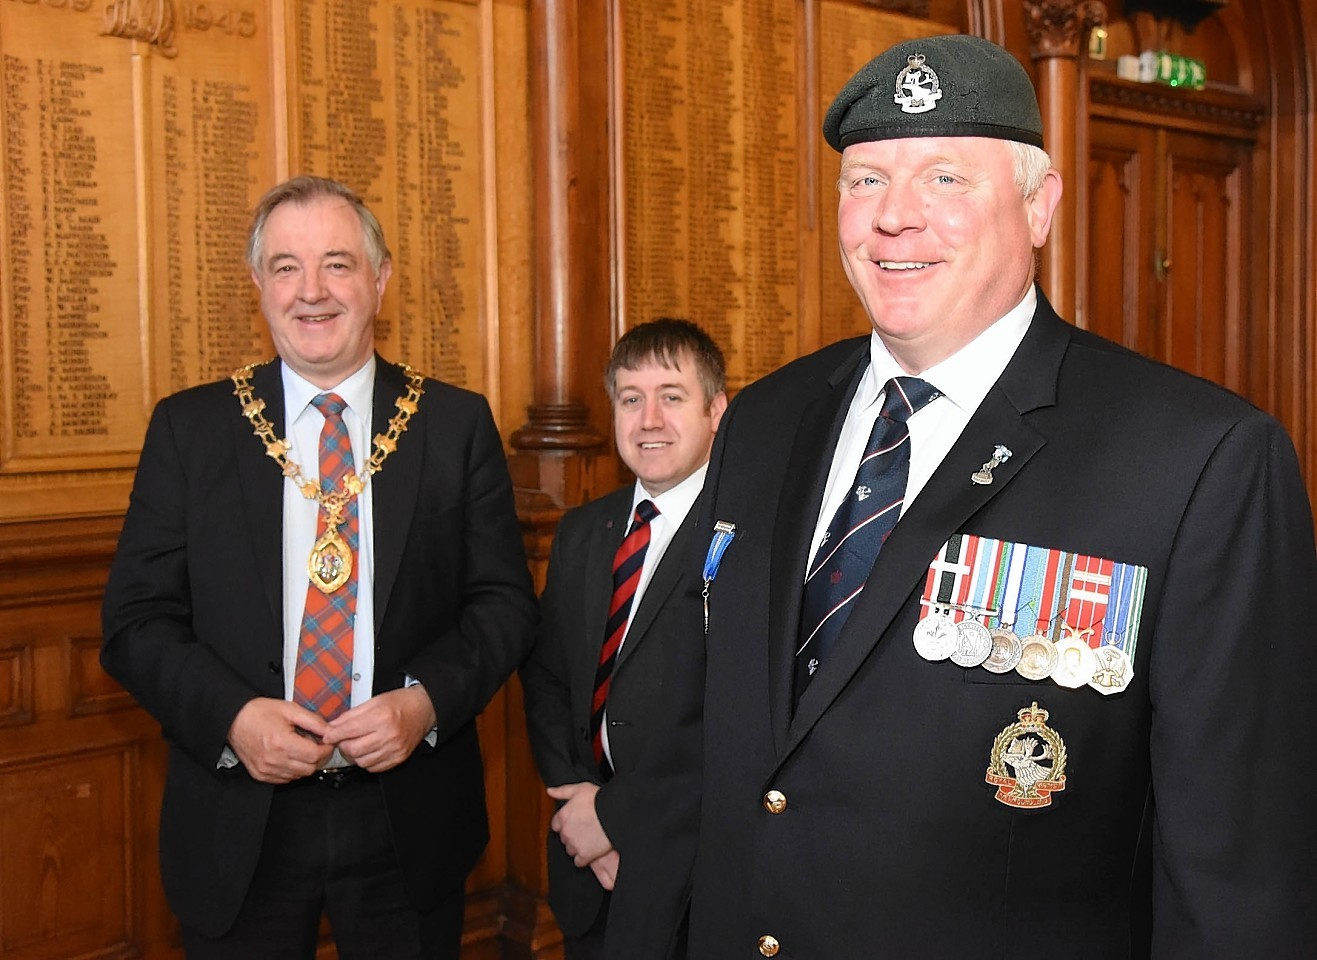 Michael Pretty of the Royal Newfoundland Regiment with Provost Alex Graham and Cllr Allan Duffy at Inverness Town House.